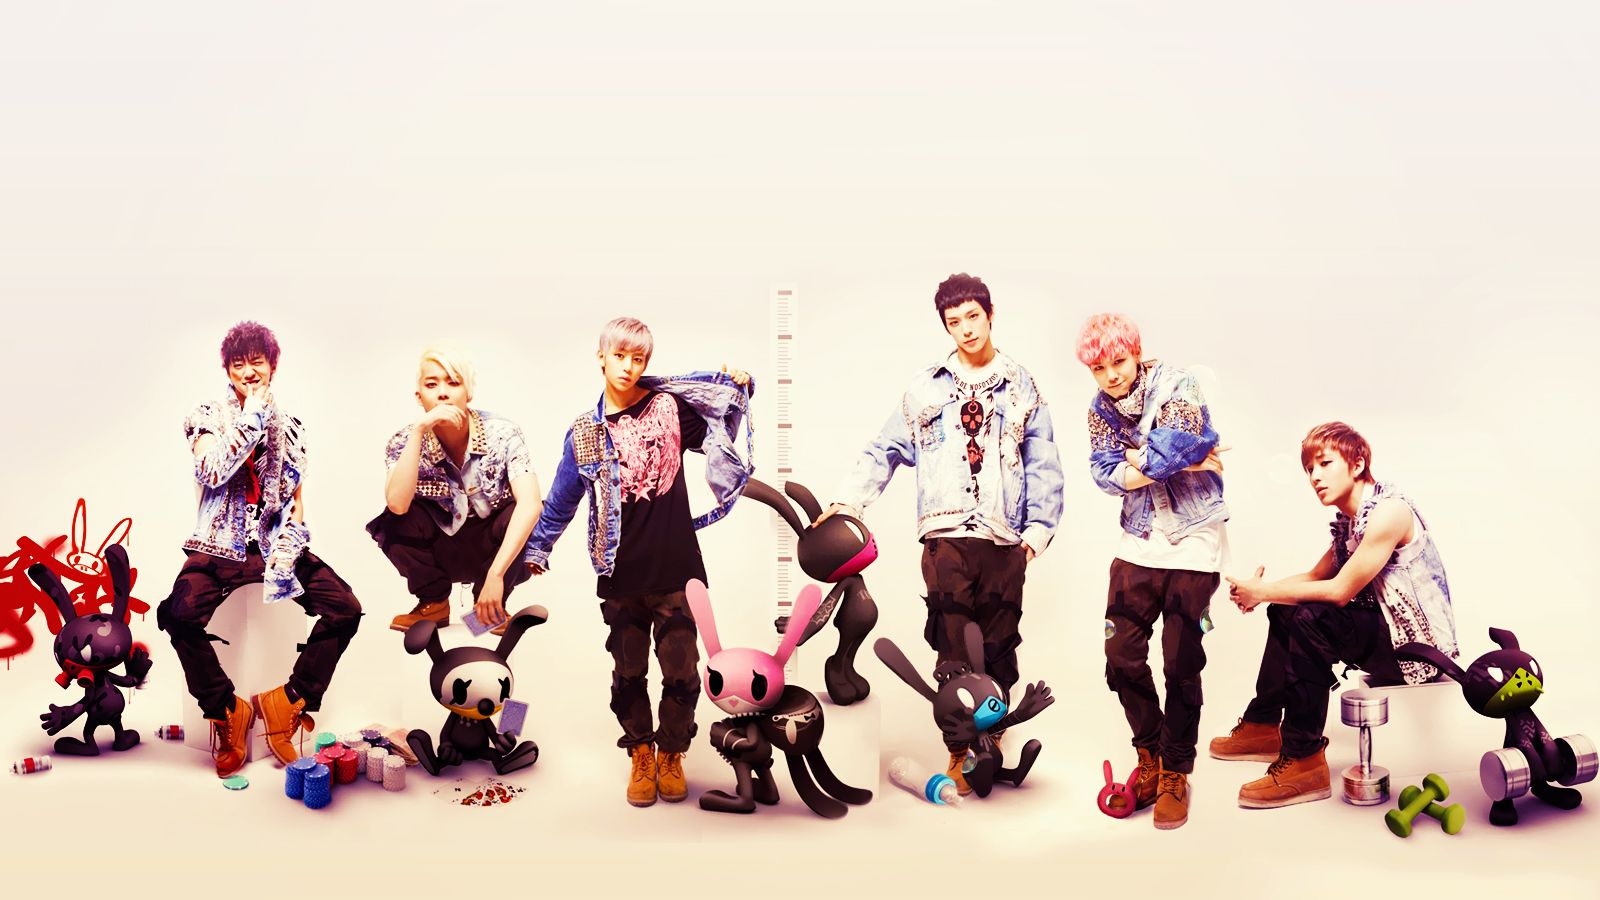 Just shared best kpop wallpaper on this years. TITILE